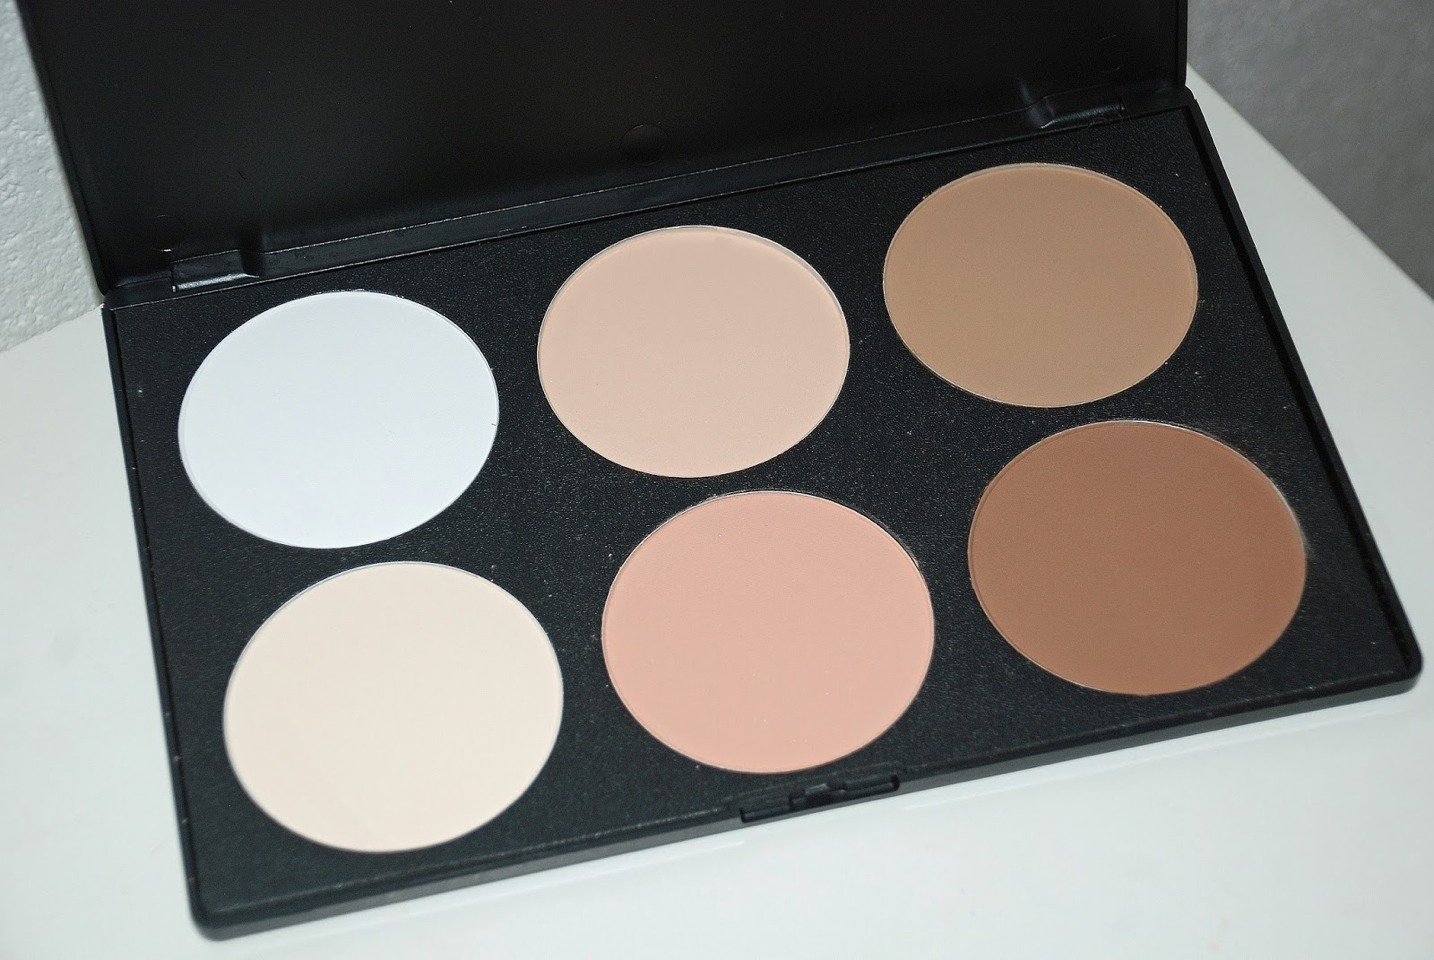 Contour and highlighter, to define and brighten your best features